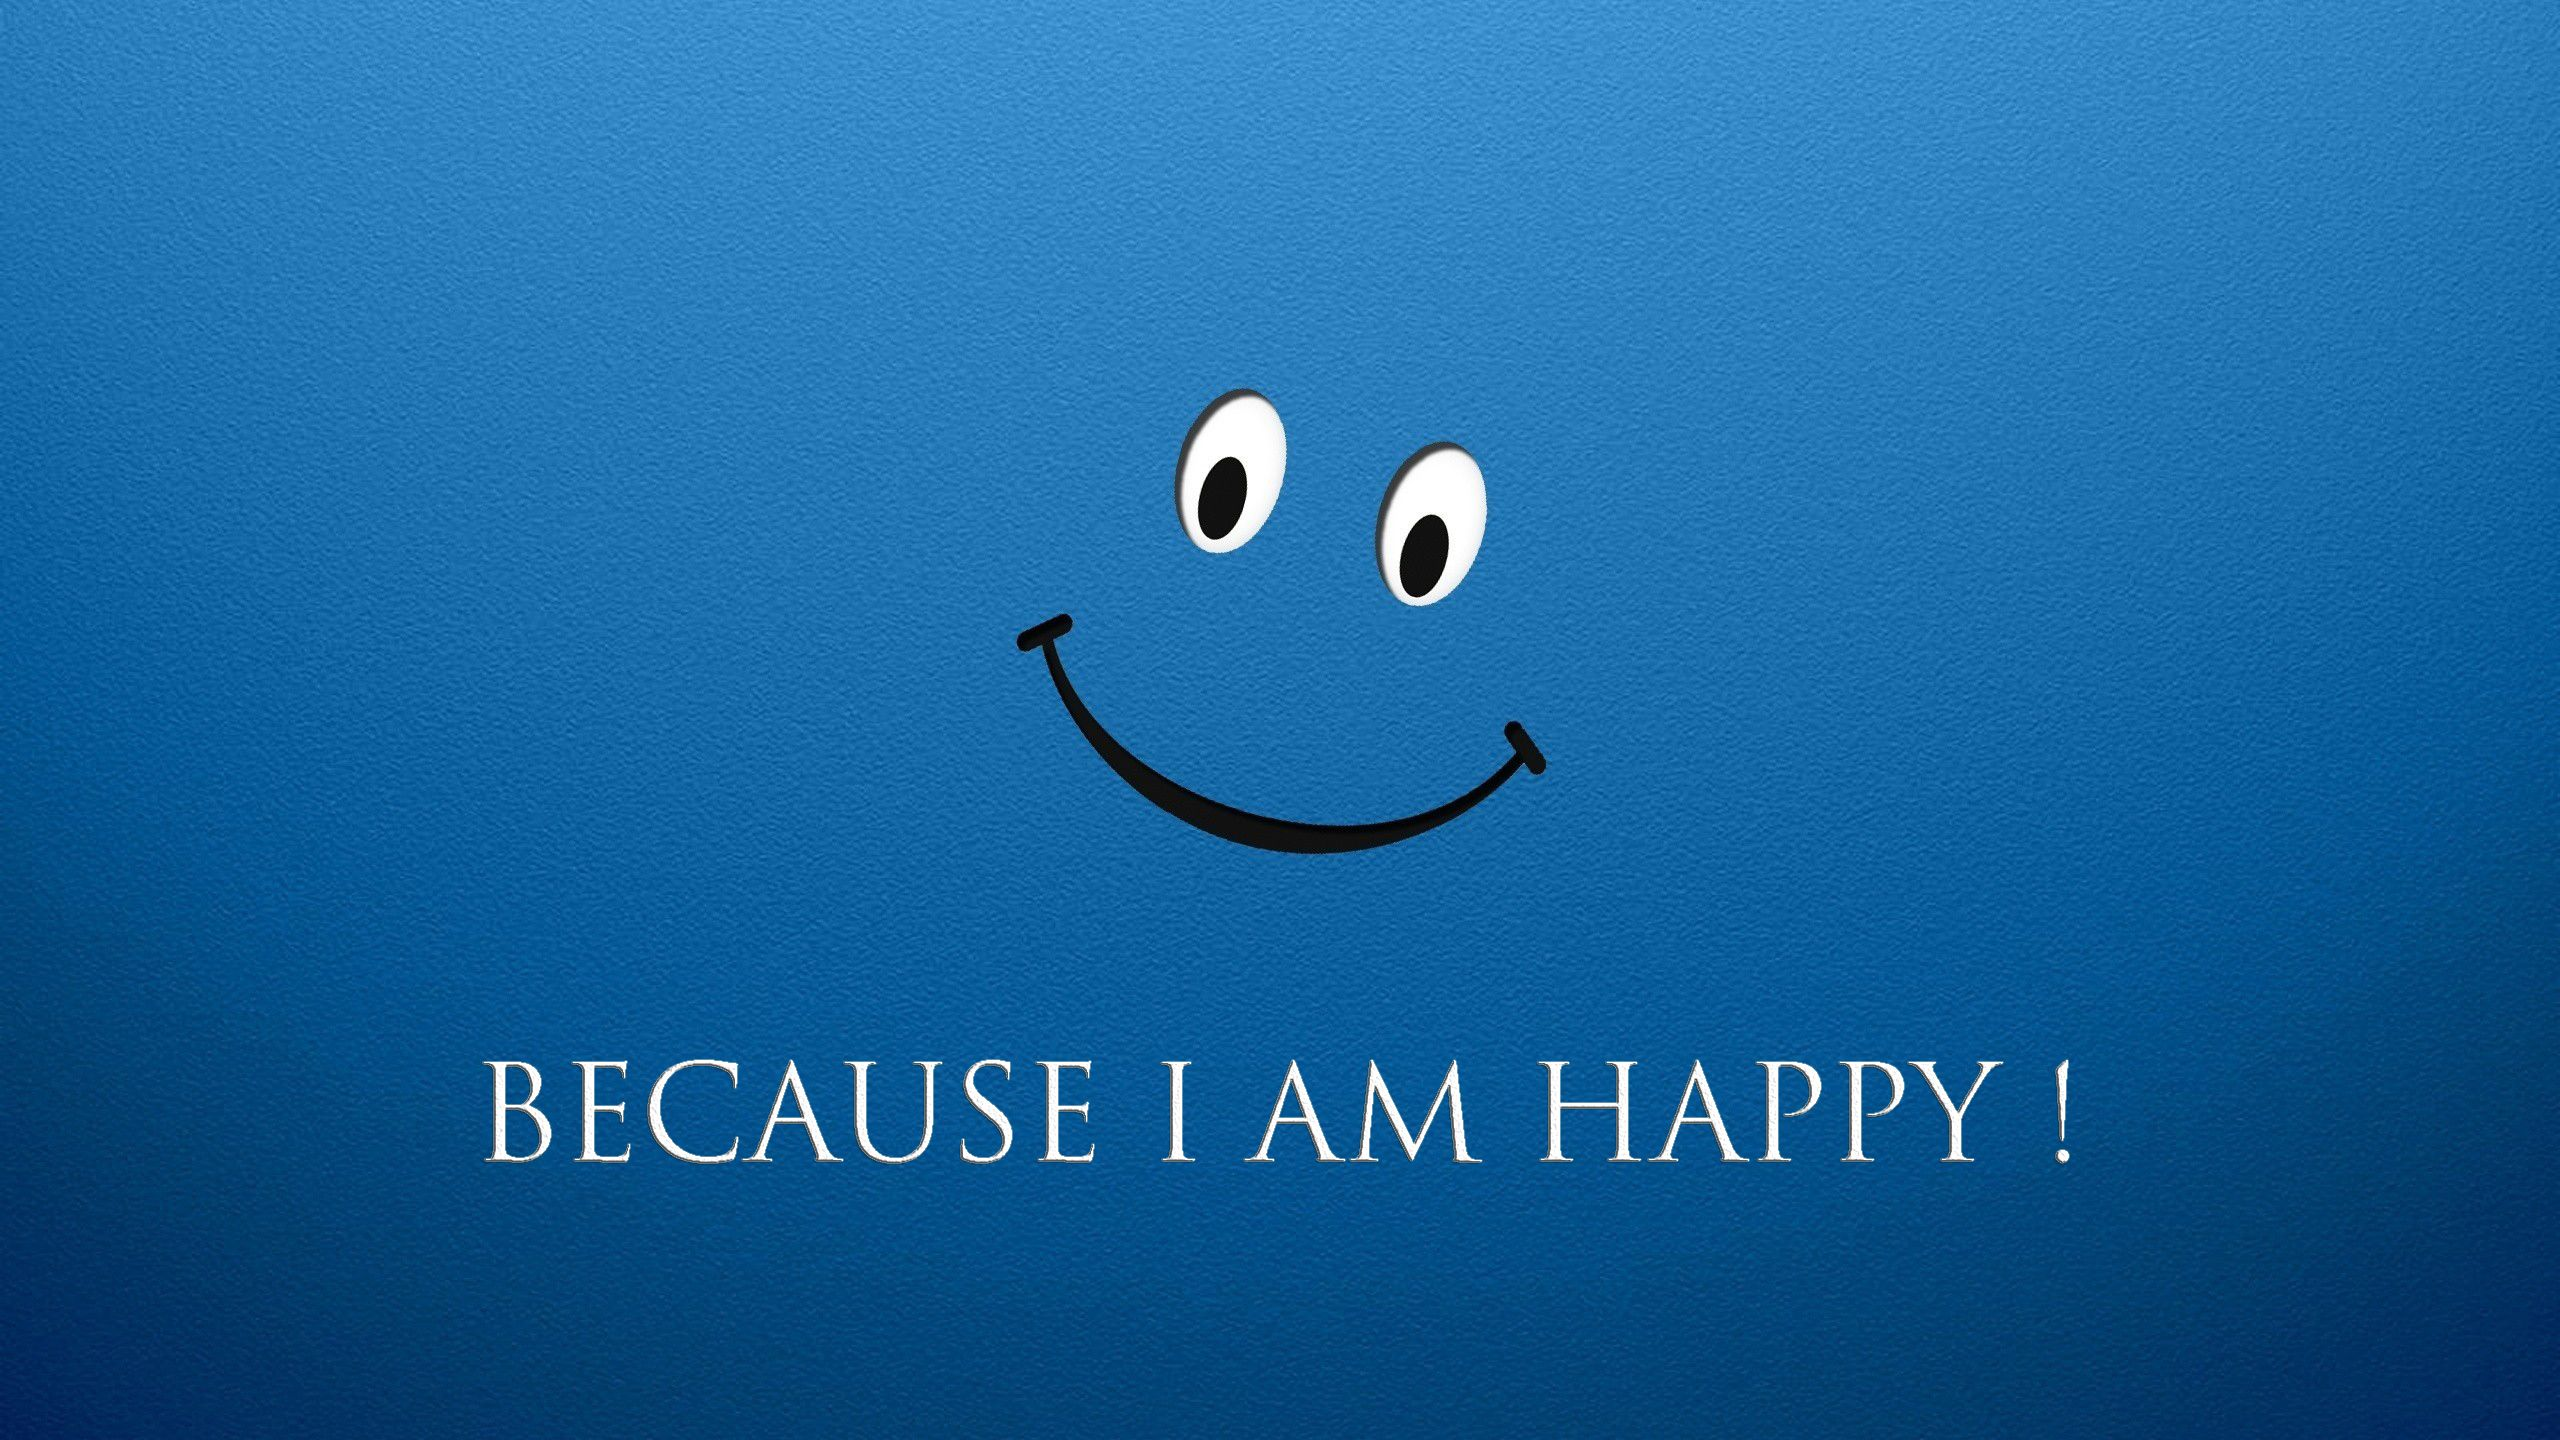 BECAUSE I AM HAPPY Smile wallpaper, Happy wallpaper